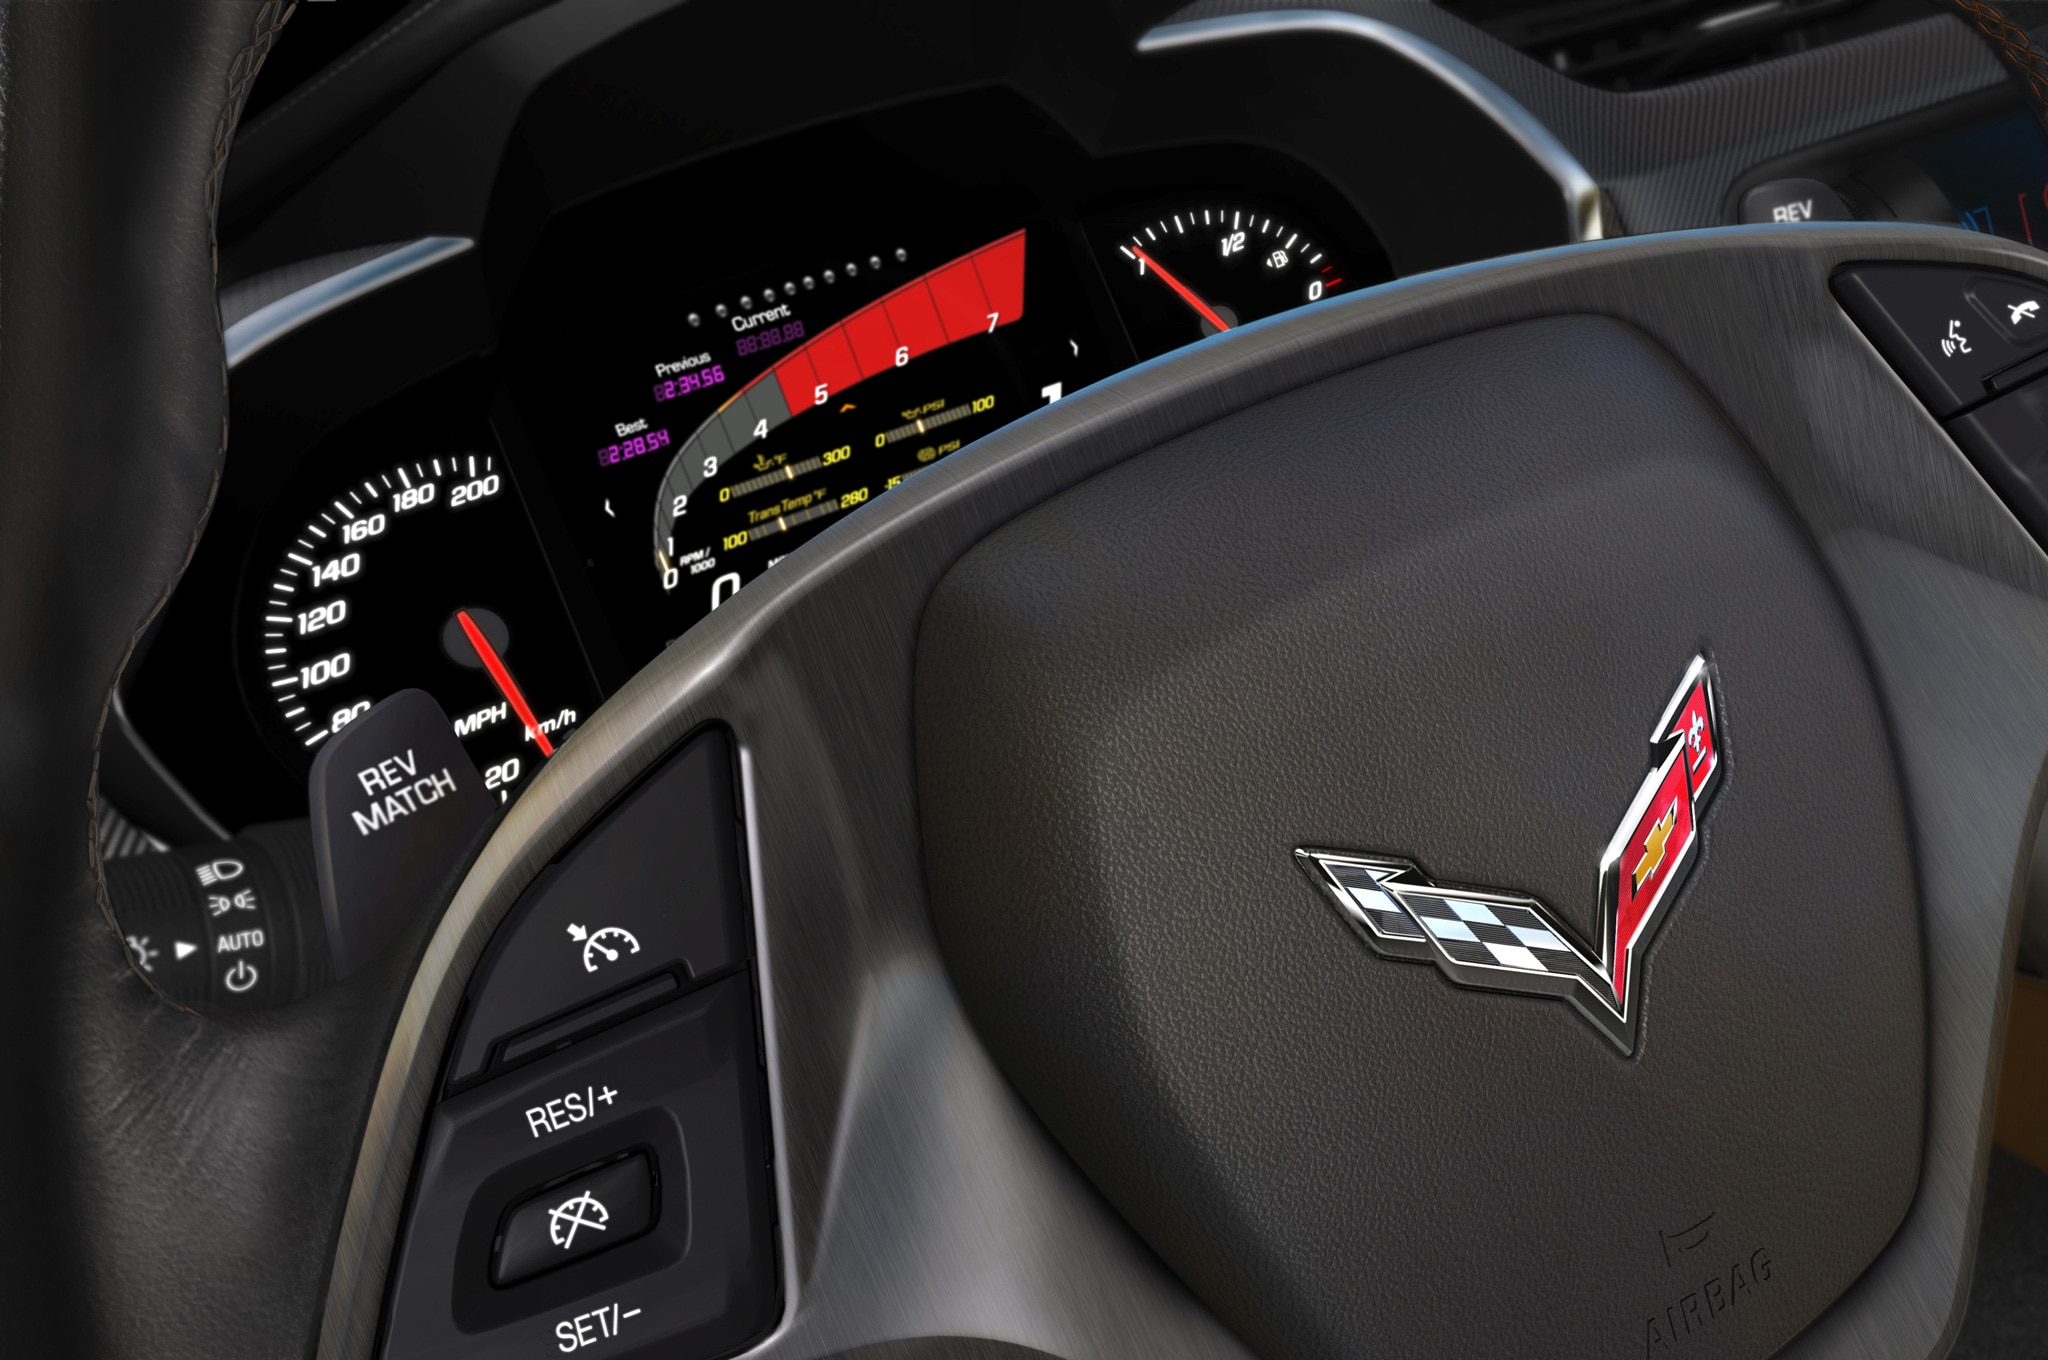 2014 Chevrolet Corvette Stingray Gauge Cluster Detail View1